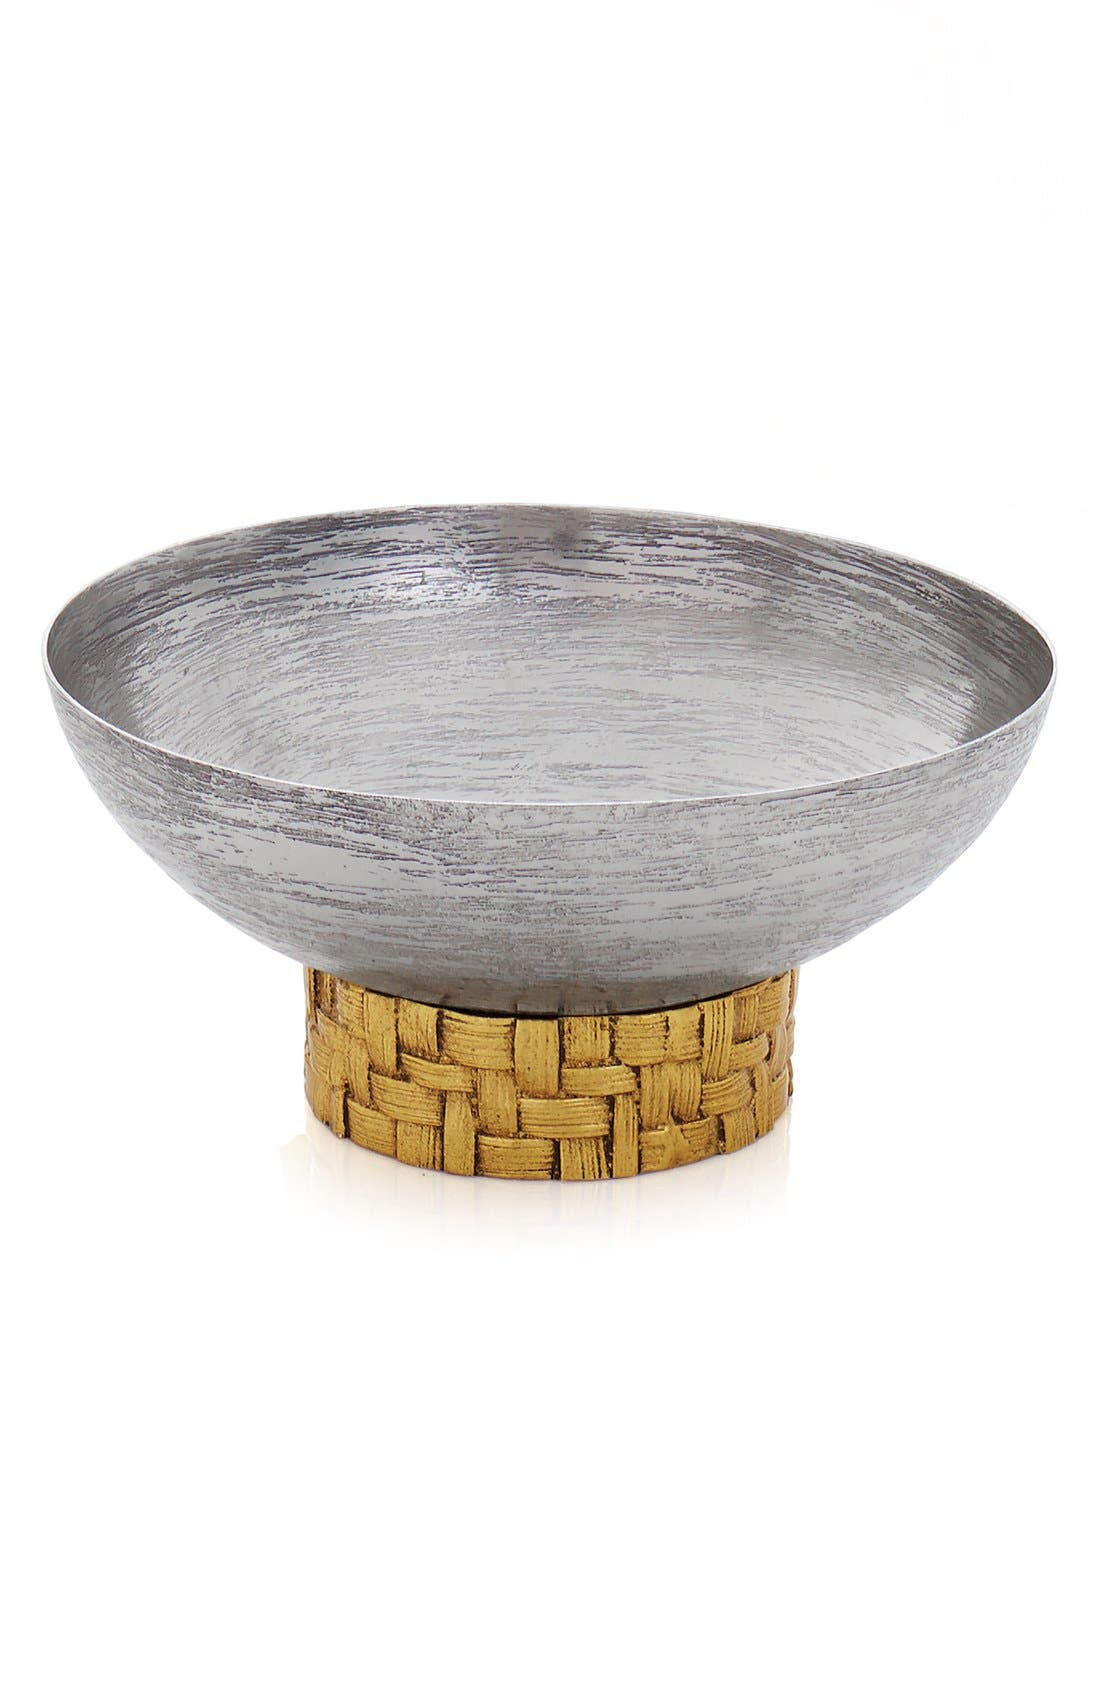 Michael Aram 'Palm' Nut Bowl